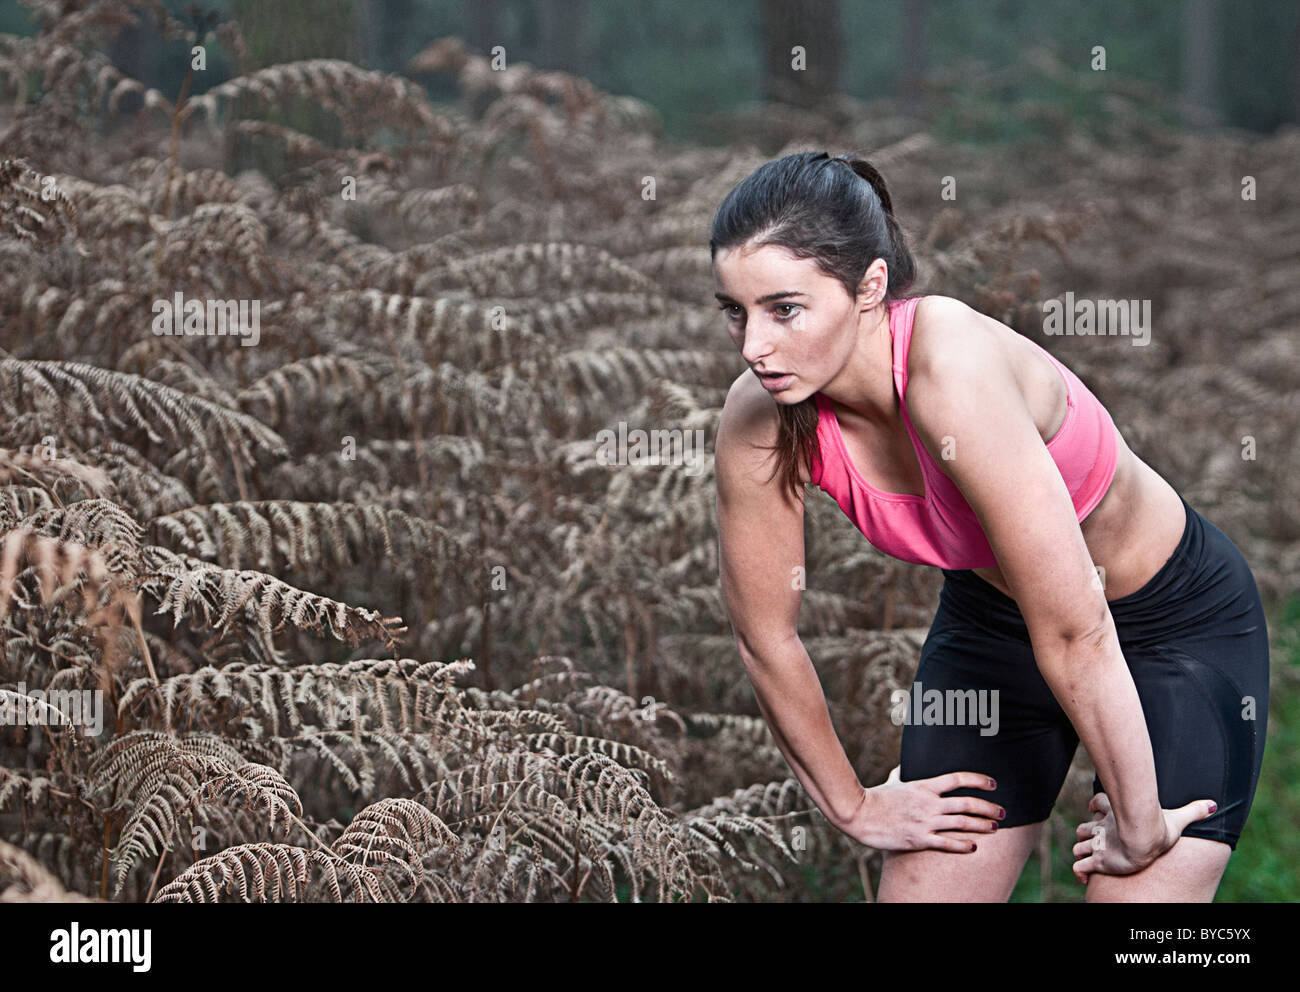 Female taking a breather from a run in the forest - Stock Image